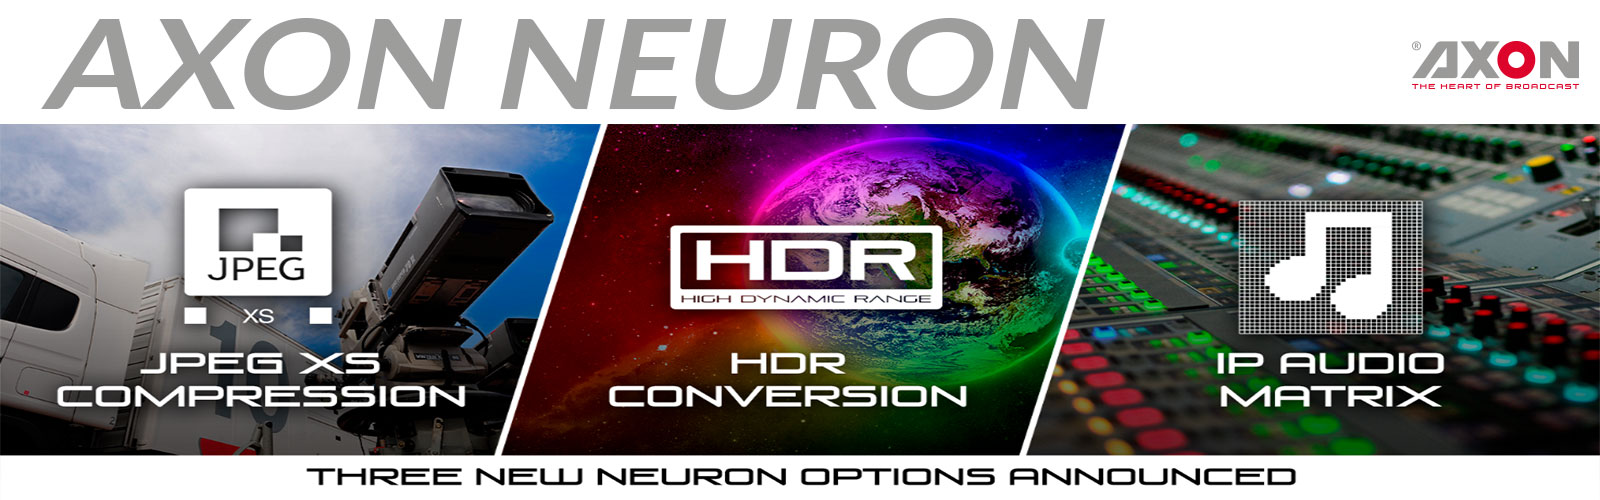 AXON_Neuron_News_slider_final